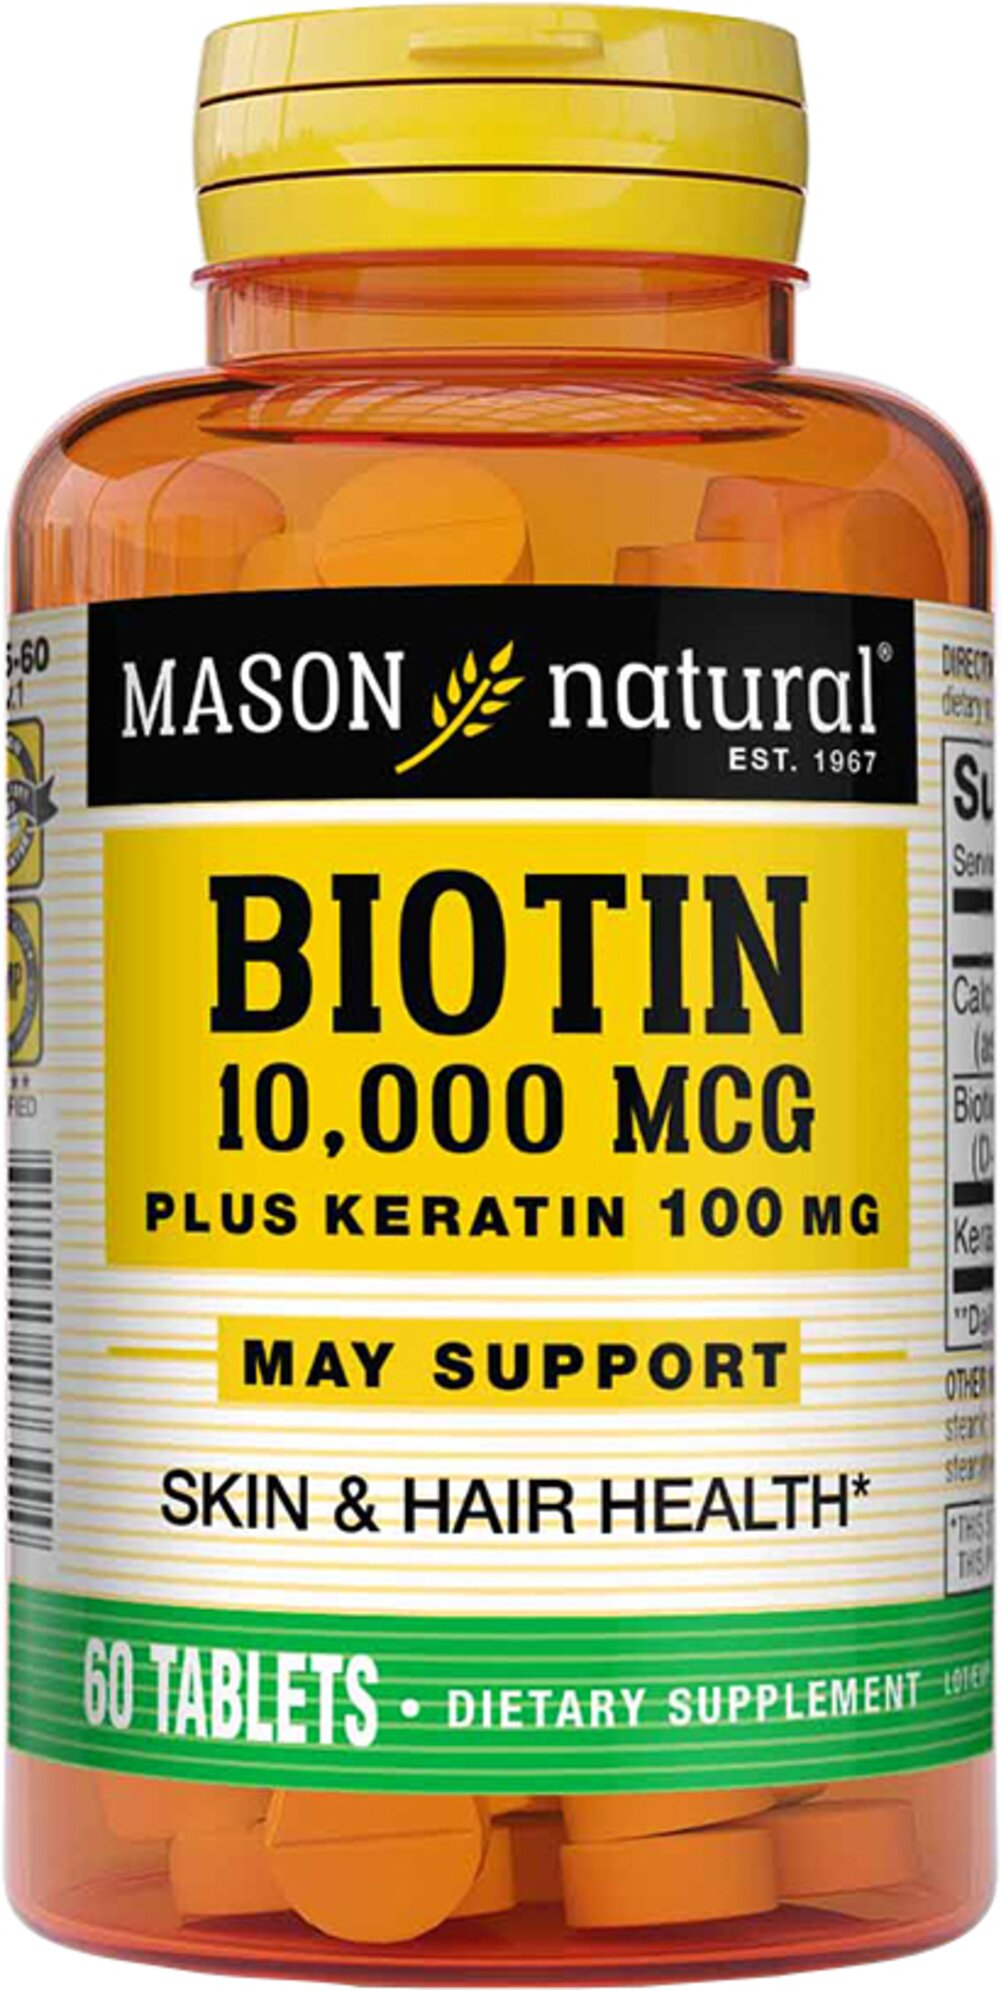 Biotin 10,000 MCG Plus Keratin 100 MG